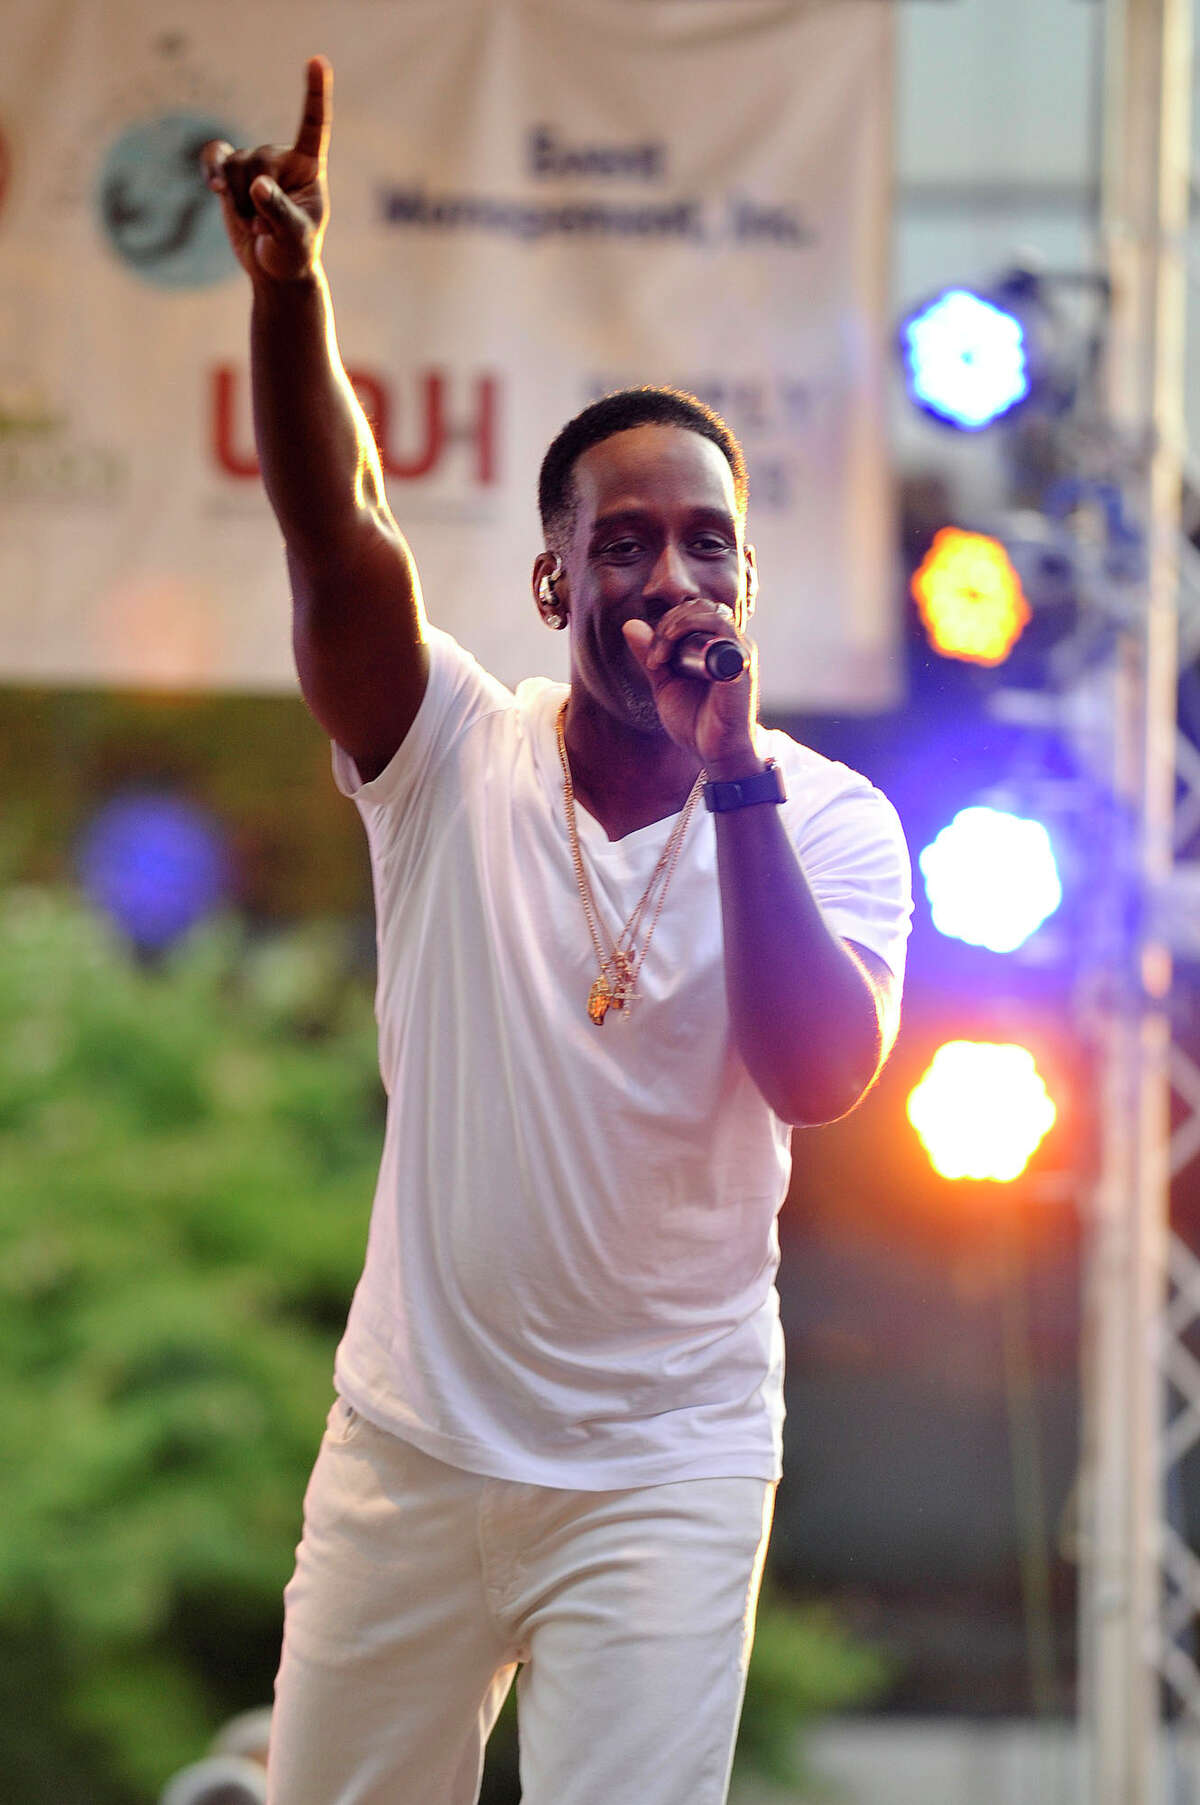 Shawn Stockman of Boyz II Men performs during the Alive@Five concert series at Columbus Park in Stamford, Conn., on Thursday, July 16, 2015. Concerts begin at 5 p.m. and run through Thursday, August 13. The headlining act for next week is Guster. Hearst Connecticut Media is a sponsor of the event.